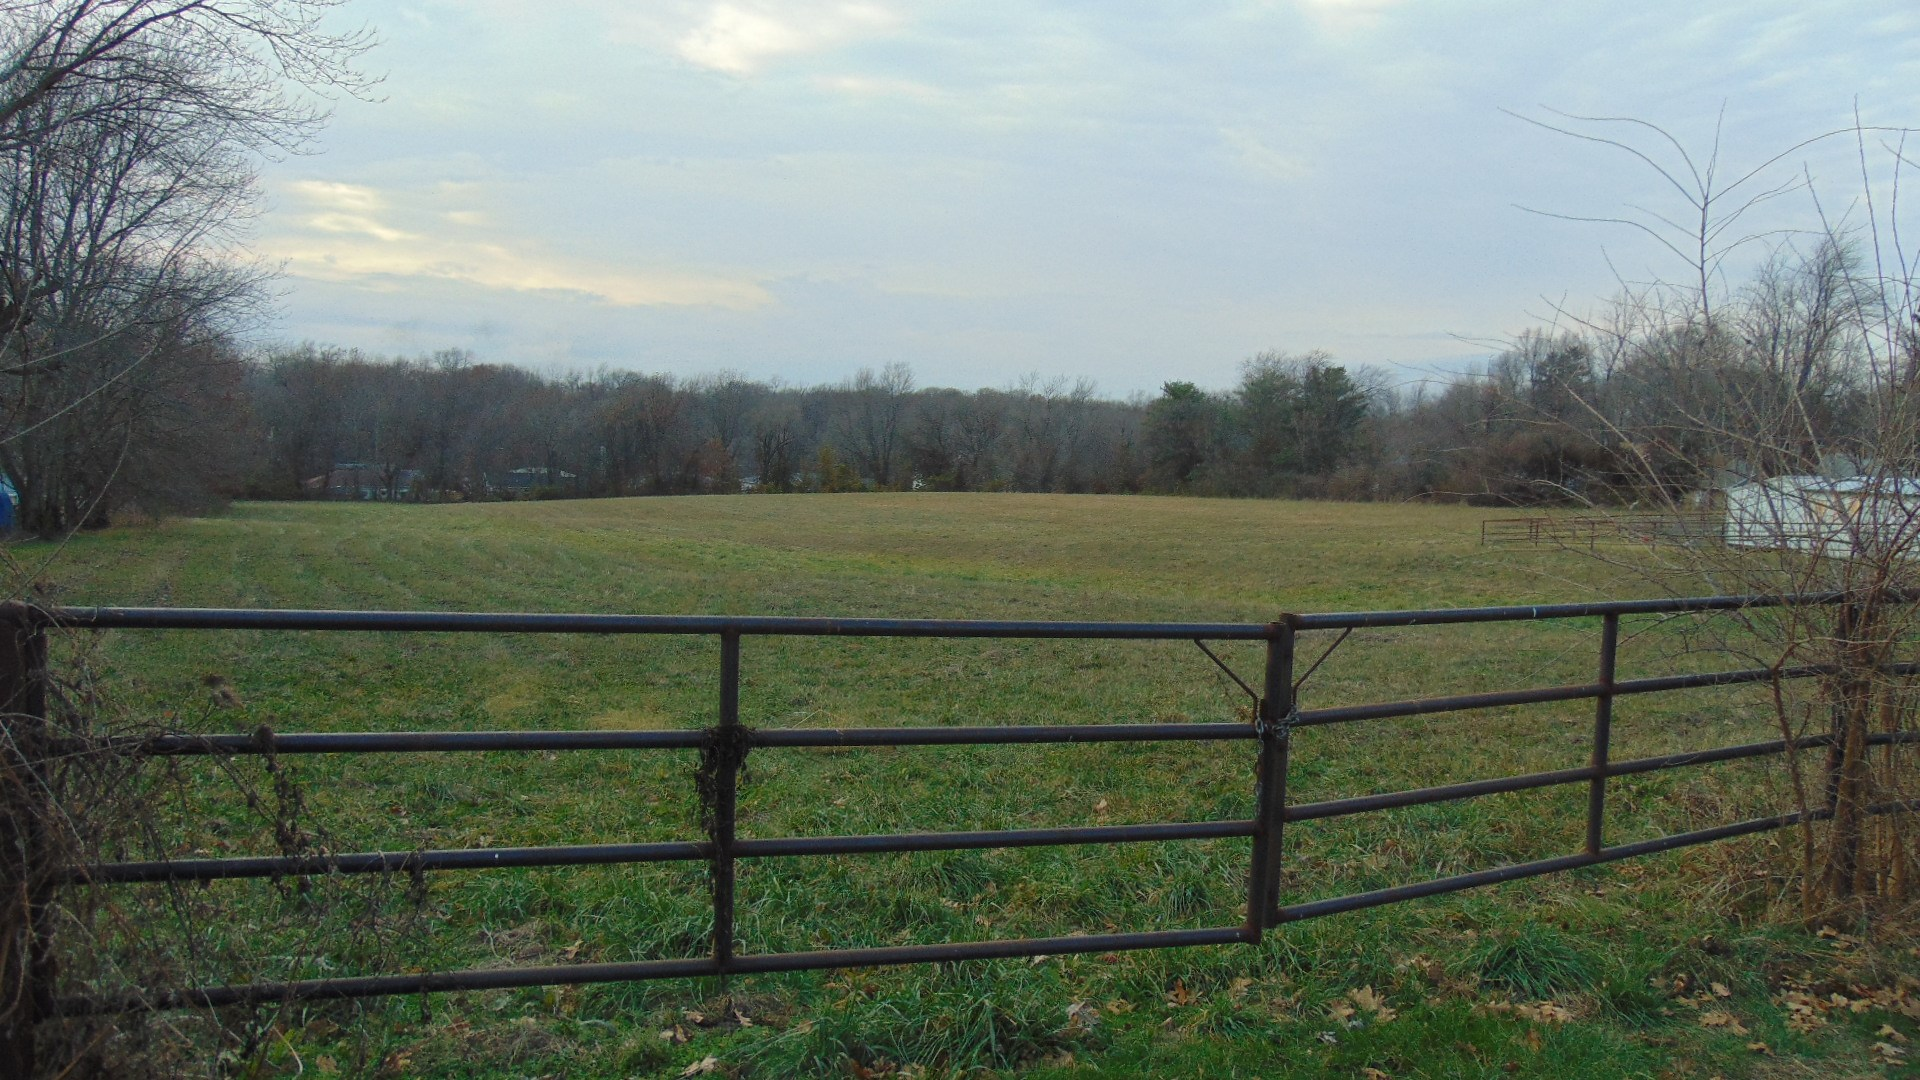 Development Land in Mountain Grove, MO For Sale